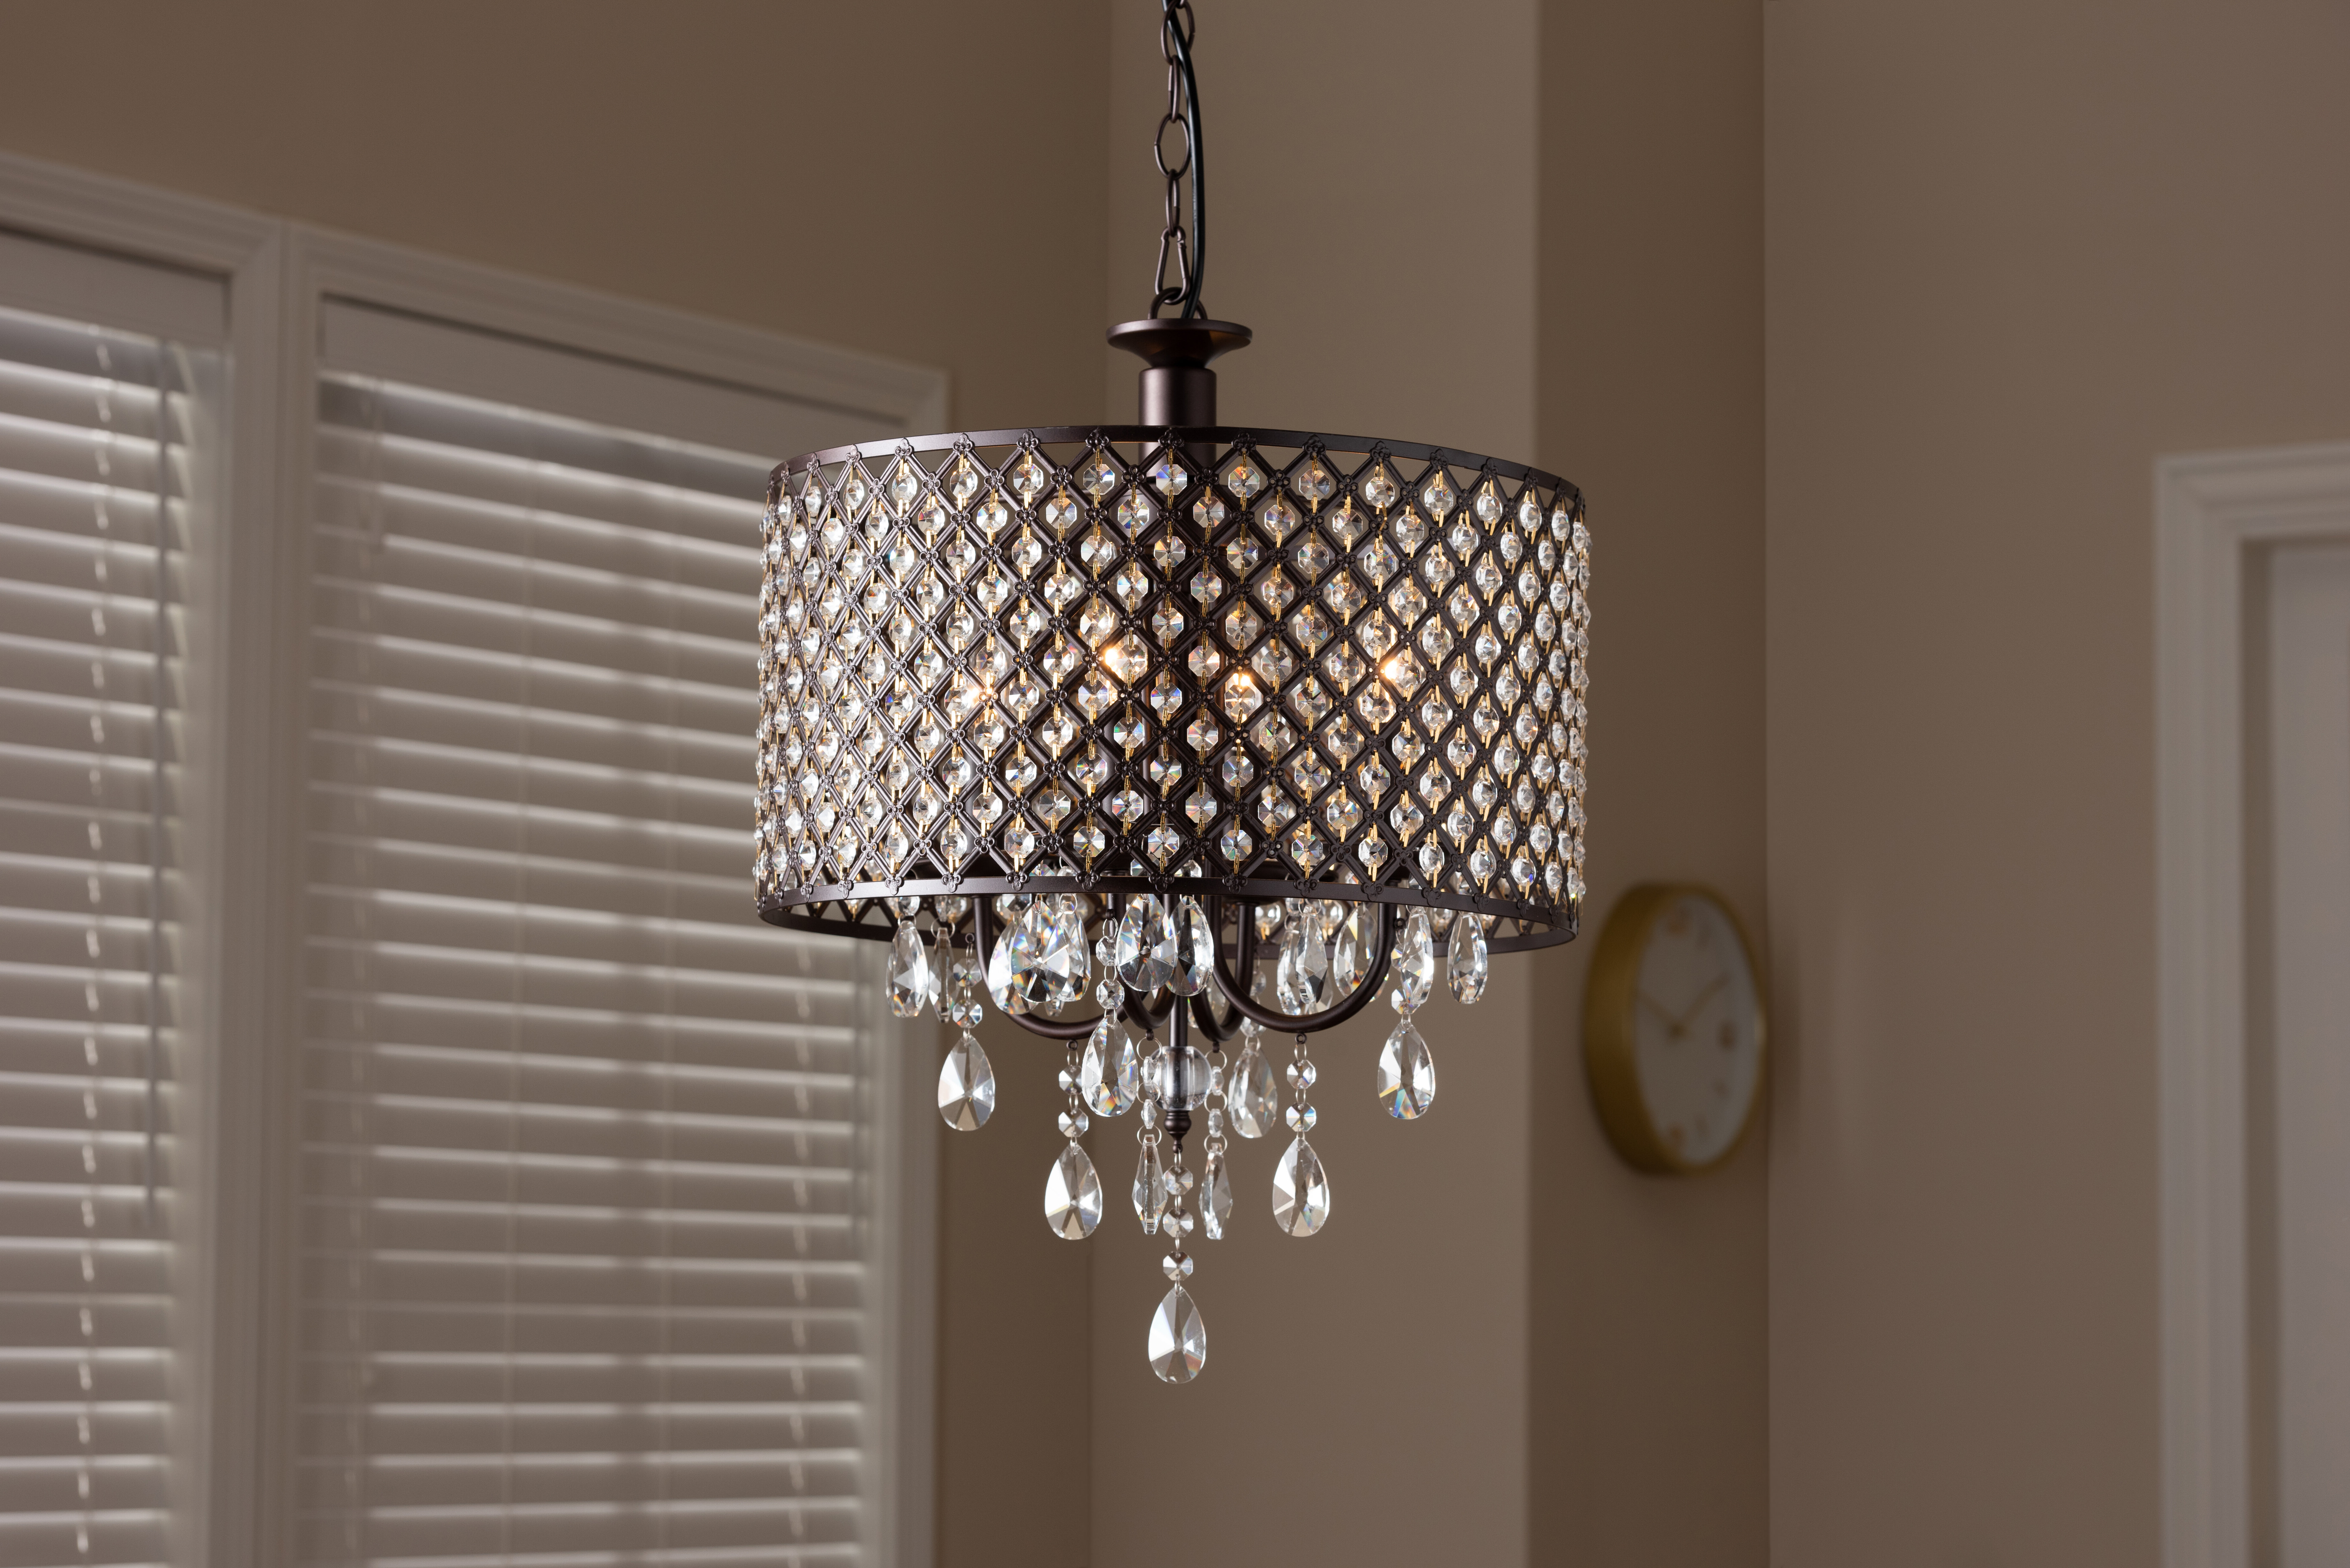 Jill 4 Light Drum Chandeliers Pertaining To Fashionable Yerkes 4 Light Drum Chandelier (Gallery 7 of 20)